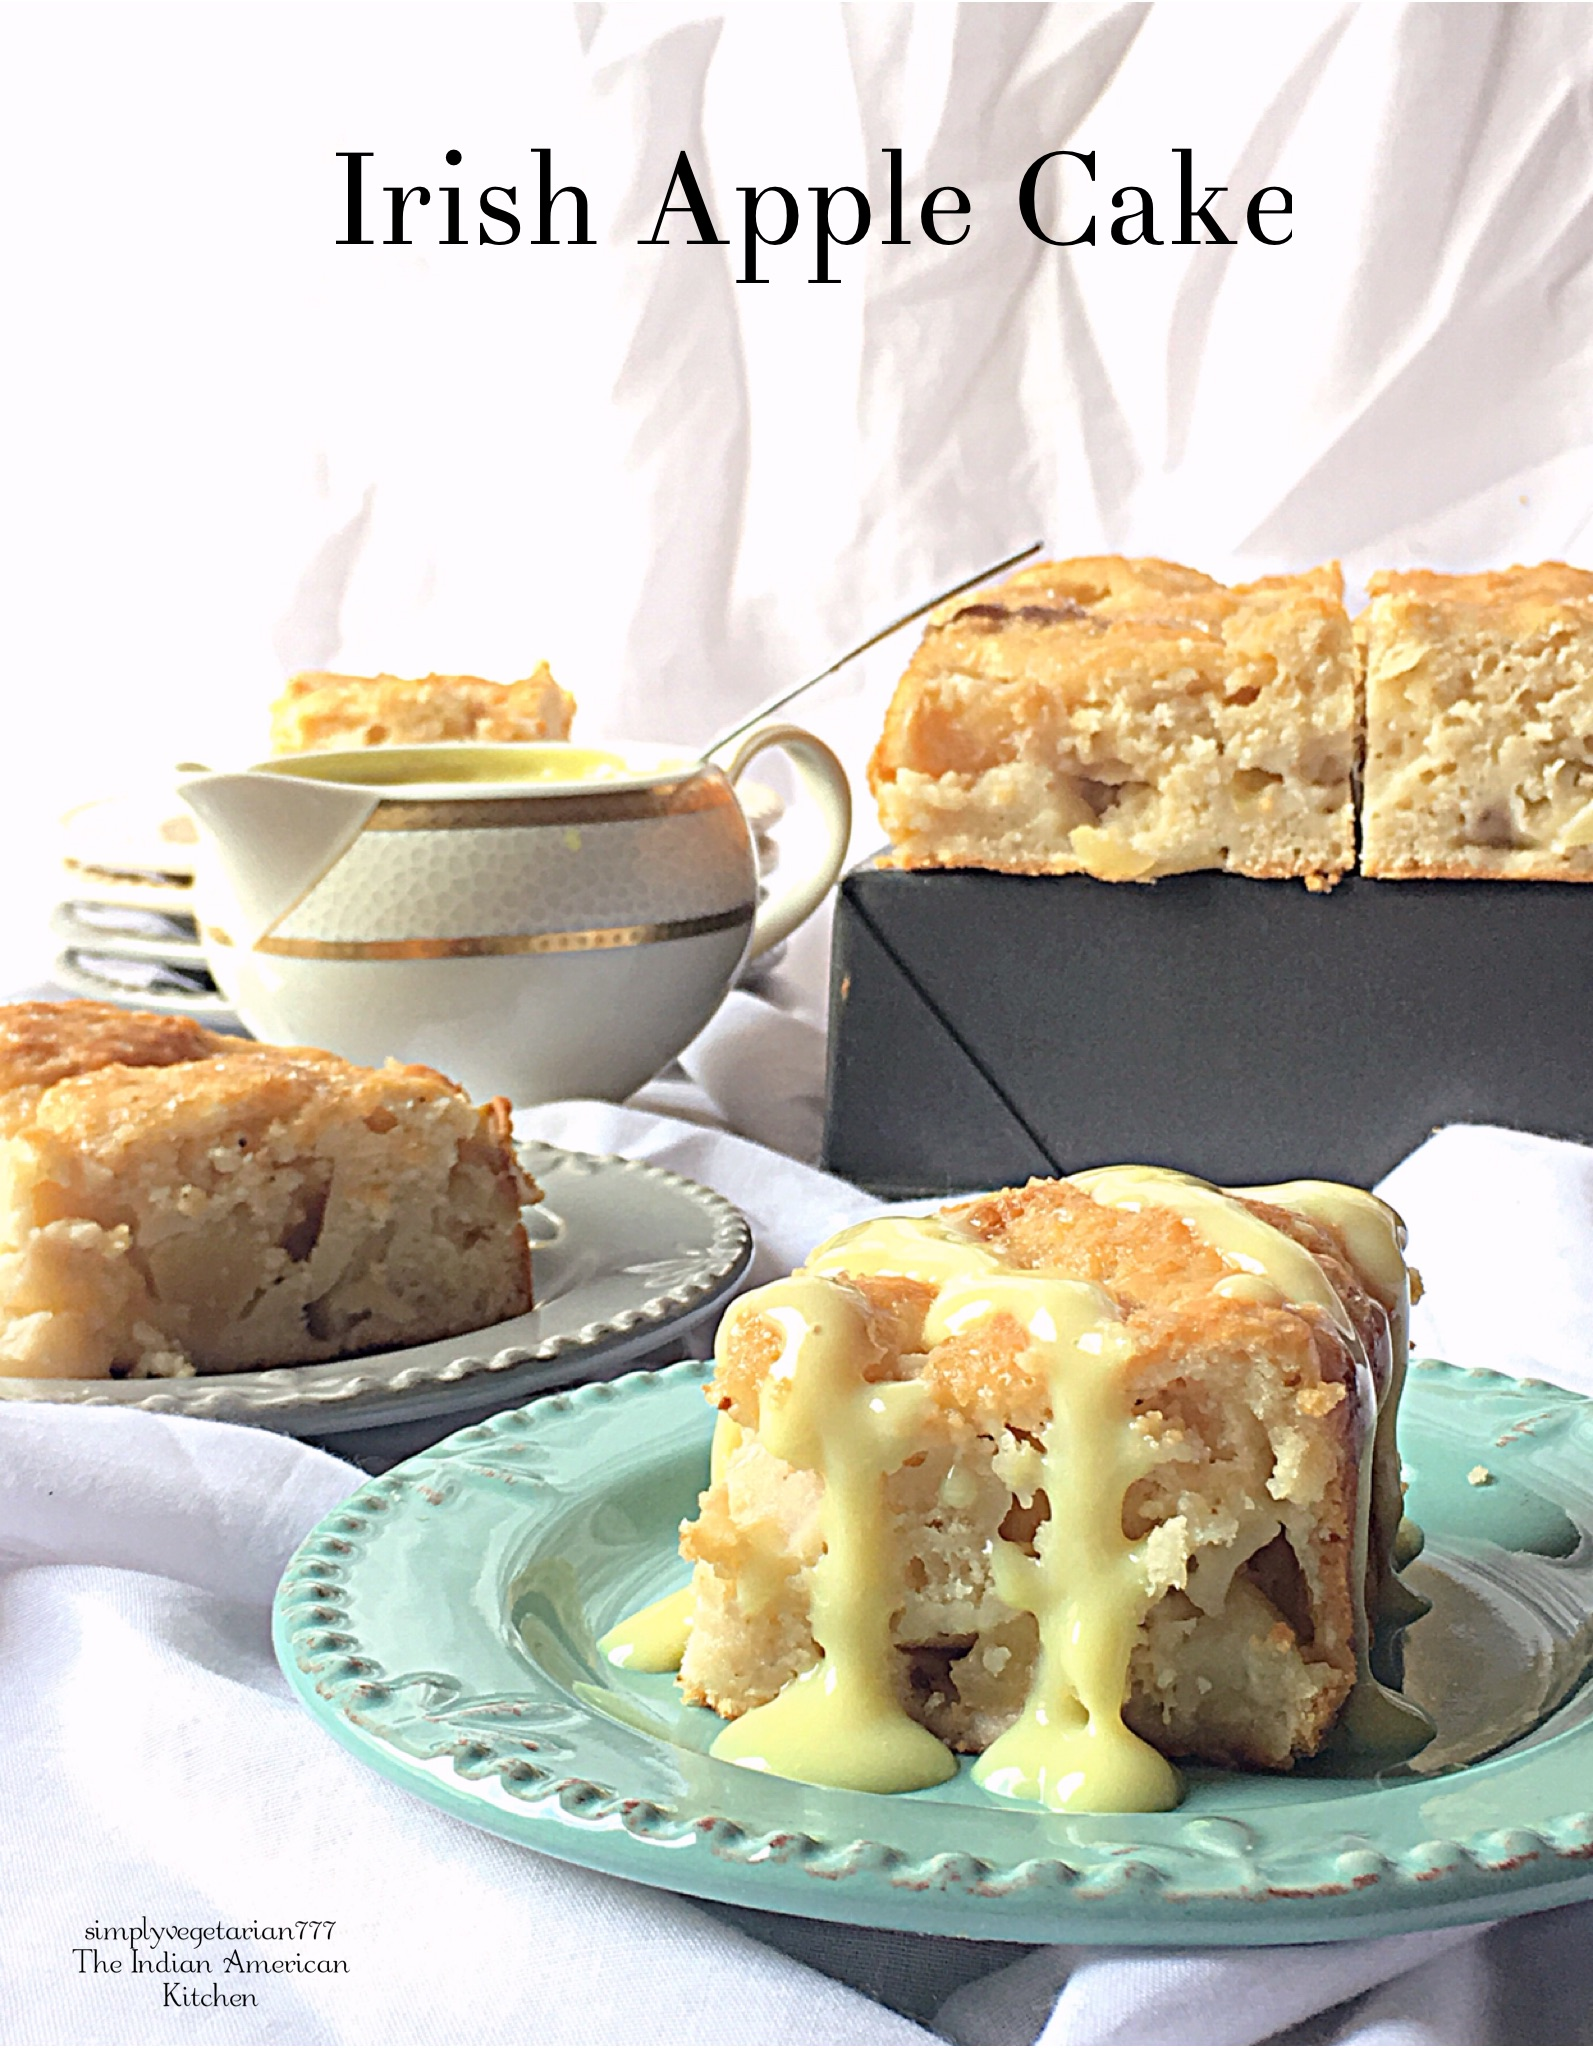 Irish Apple Cake is a type of Apple Bread from Ireland, with Crusty Top and Moist inside. This cake tastes amazing with Custard Sauce or Whipped Cream or Vanilla Ice-Cream. It is a perfect way to celebrate St. Patrick's Day, celebration from Ireland. #applecake #cakrecipe #egglesscake #eggfreecake #eggfreebakes #applebread #irishcake #irishapplecake #irishapplebread #stpatricksdayrecipes #stpatricksdaycakes